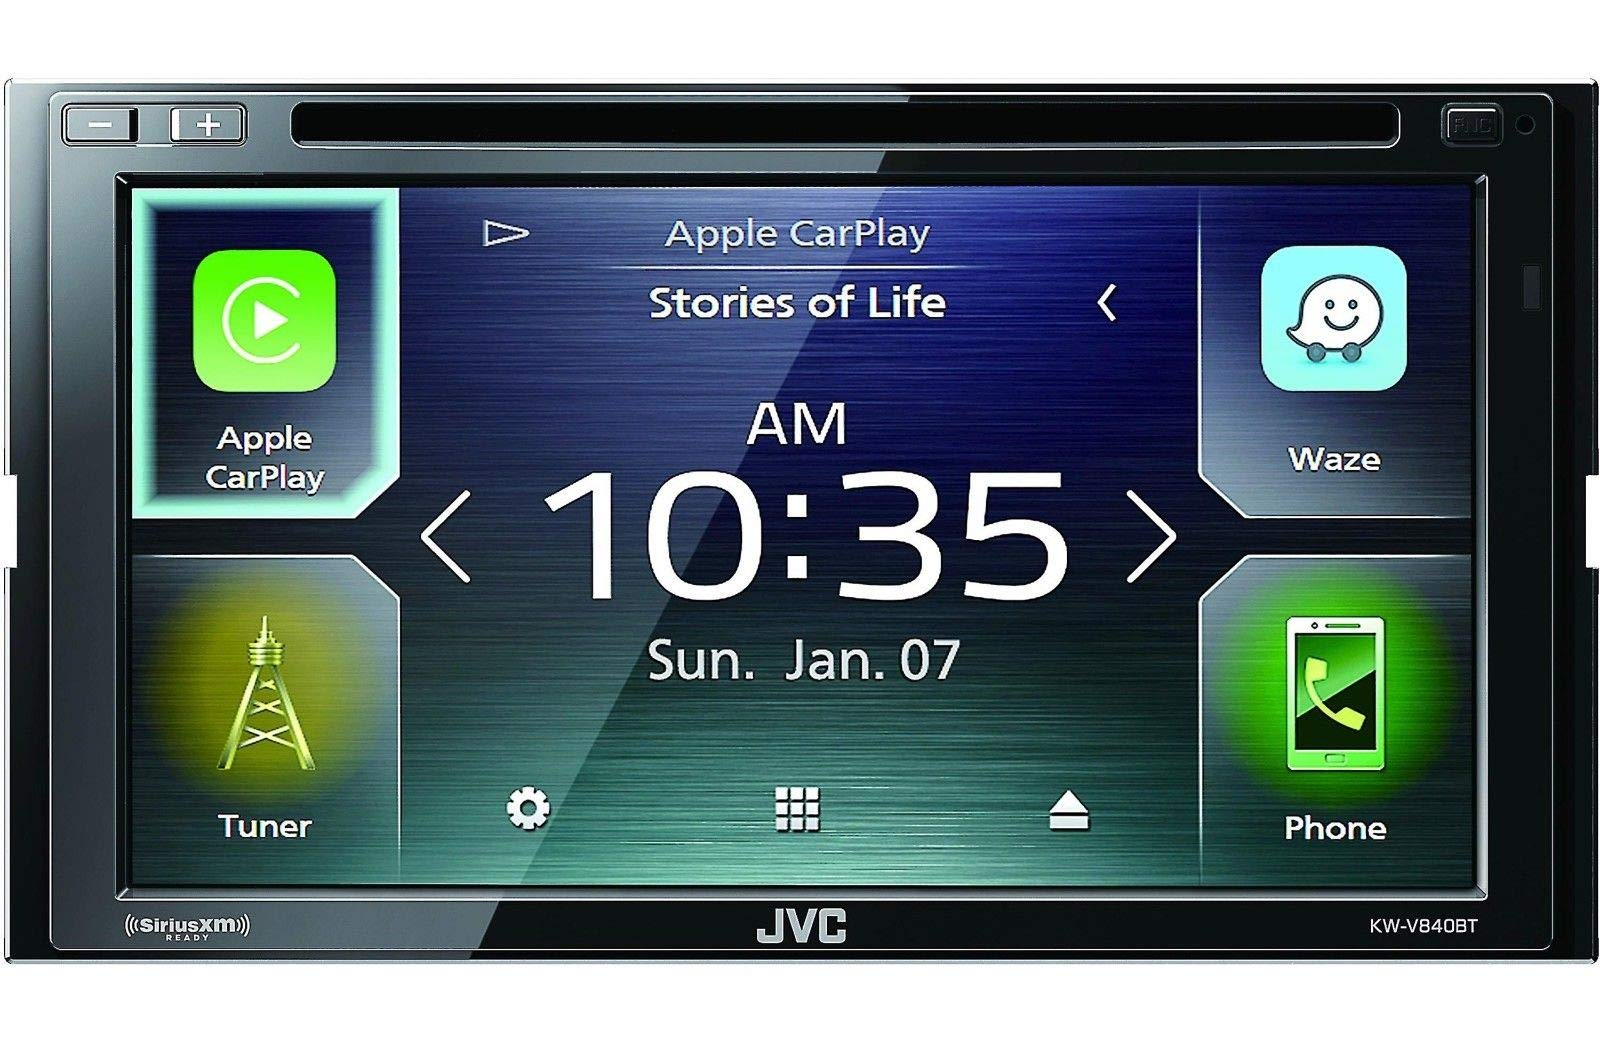 JVC KW-V840BT compatible with Android Auto / Apple CarPlay CD/DVD Stereo / JVC WebLink by JVC